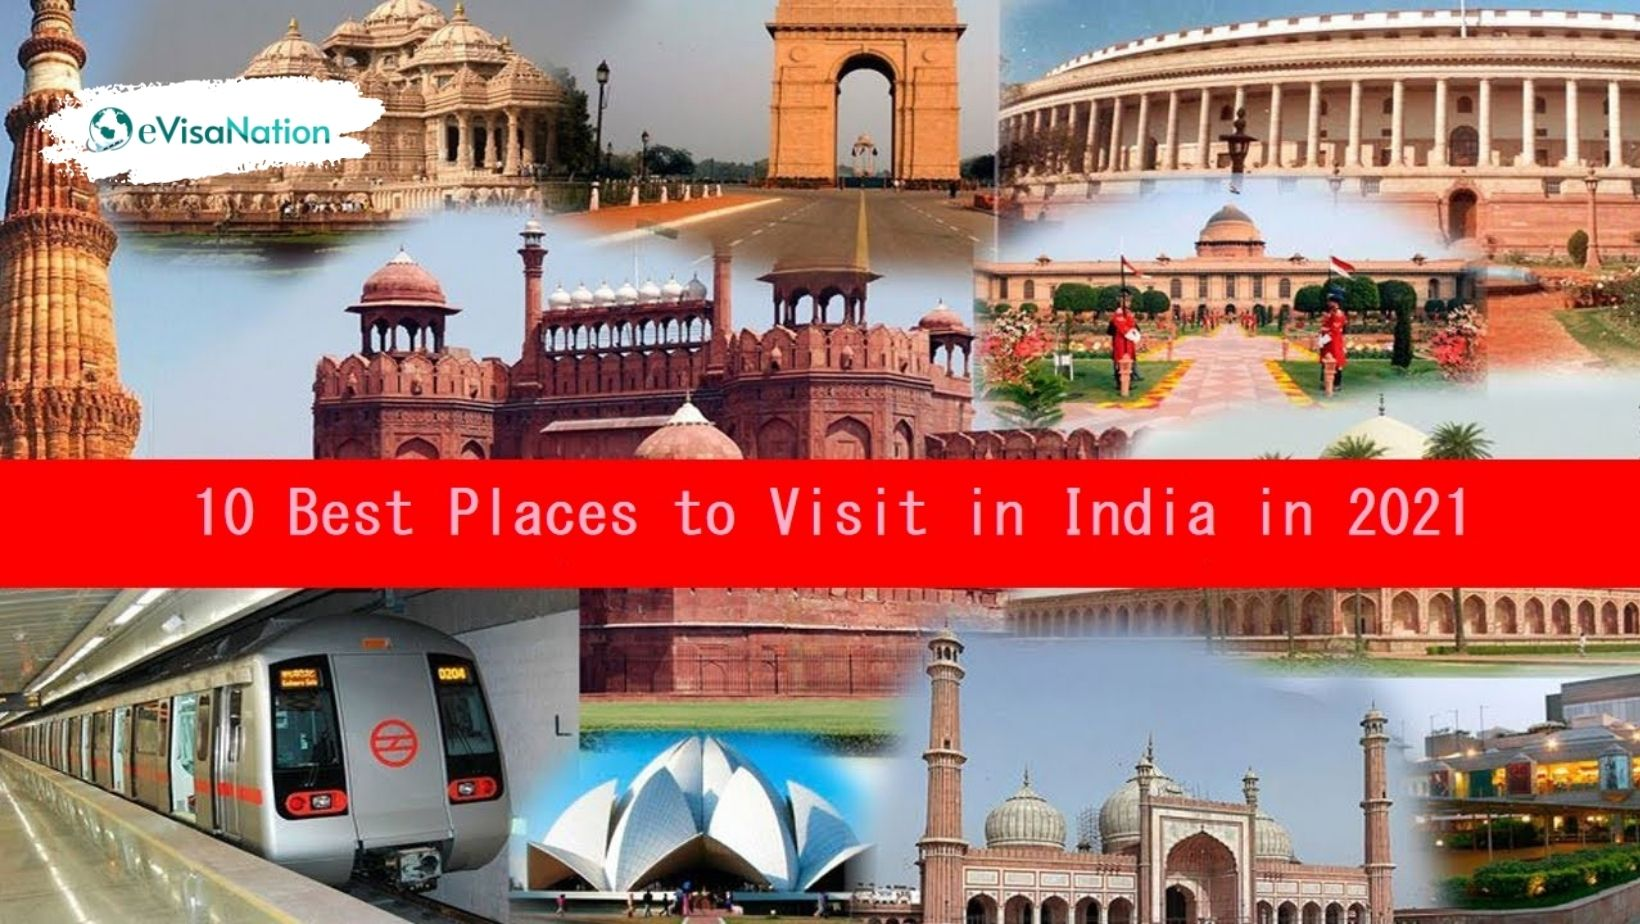 So here were our top 10 places to visit in India to help you plan your next trip